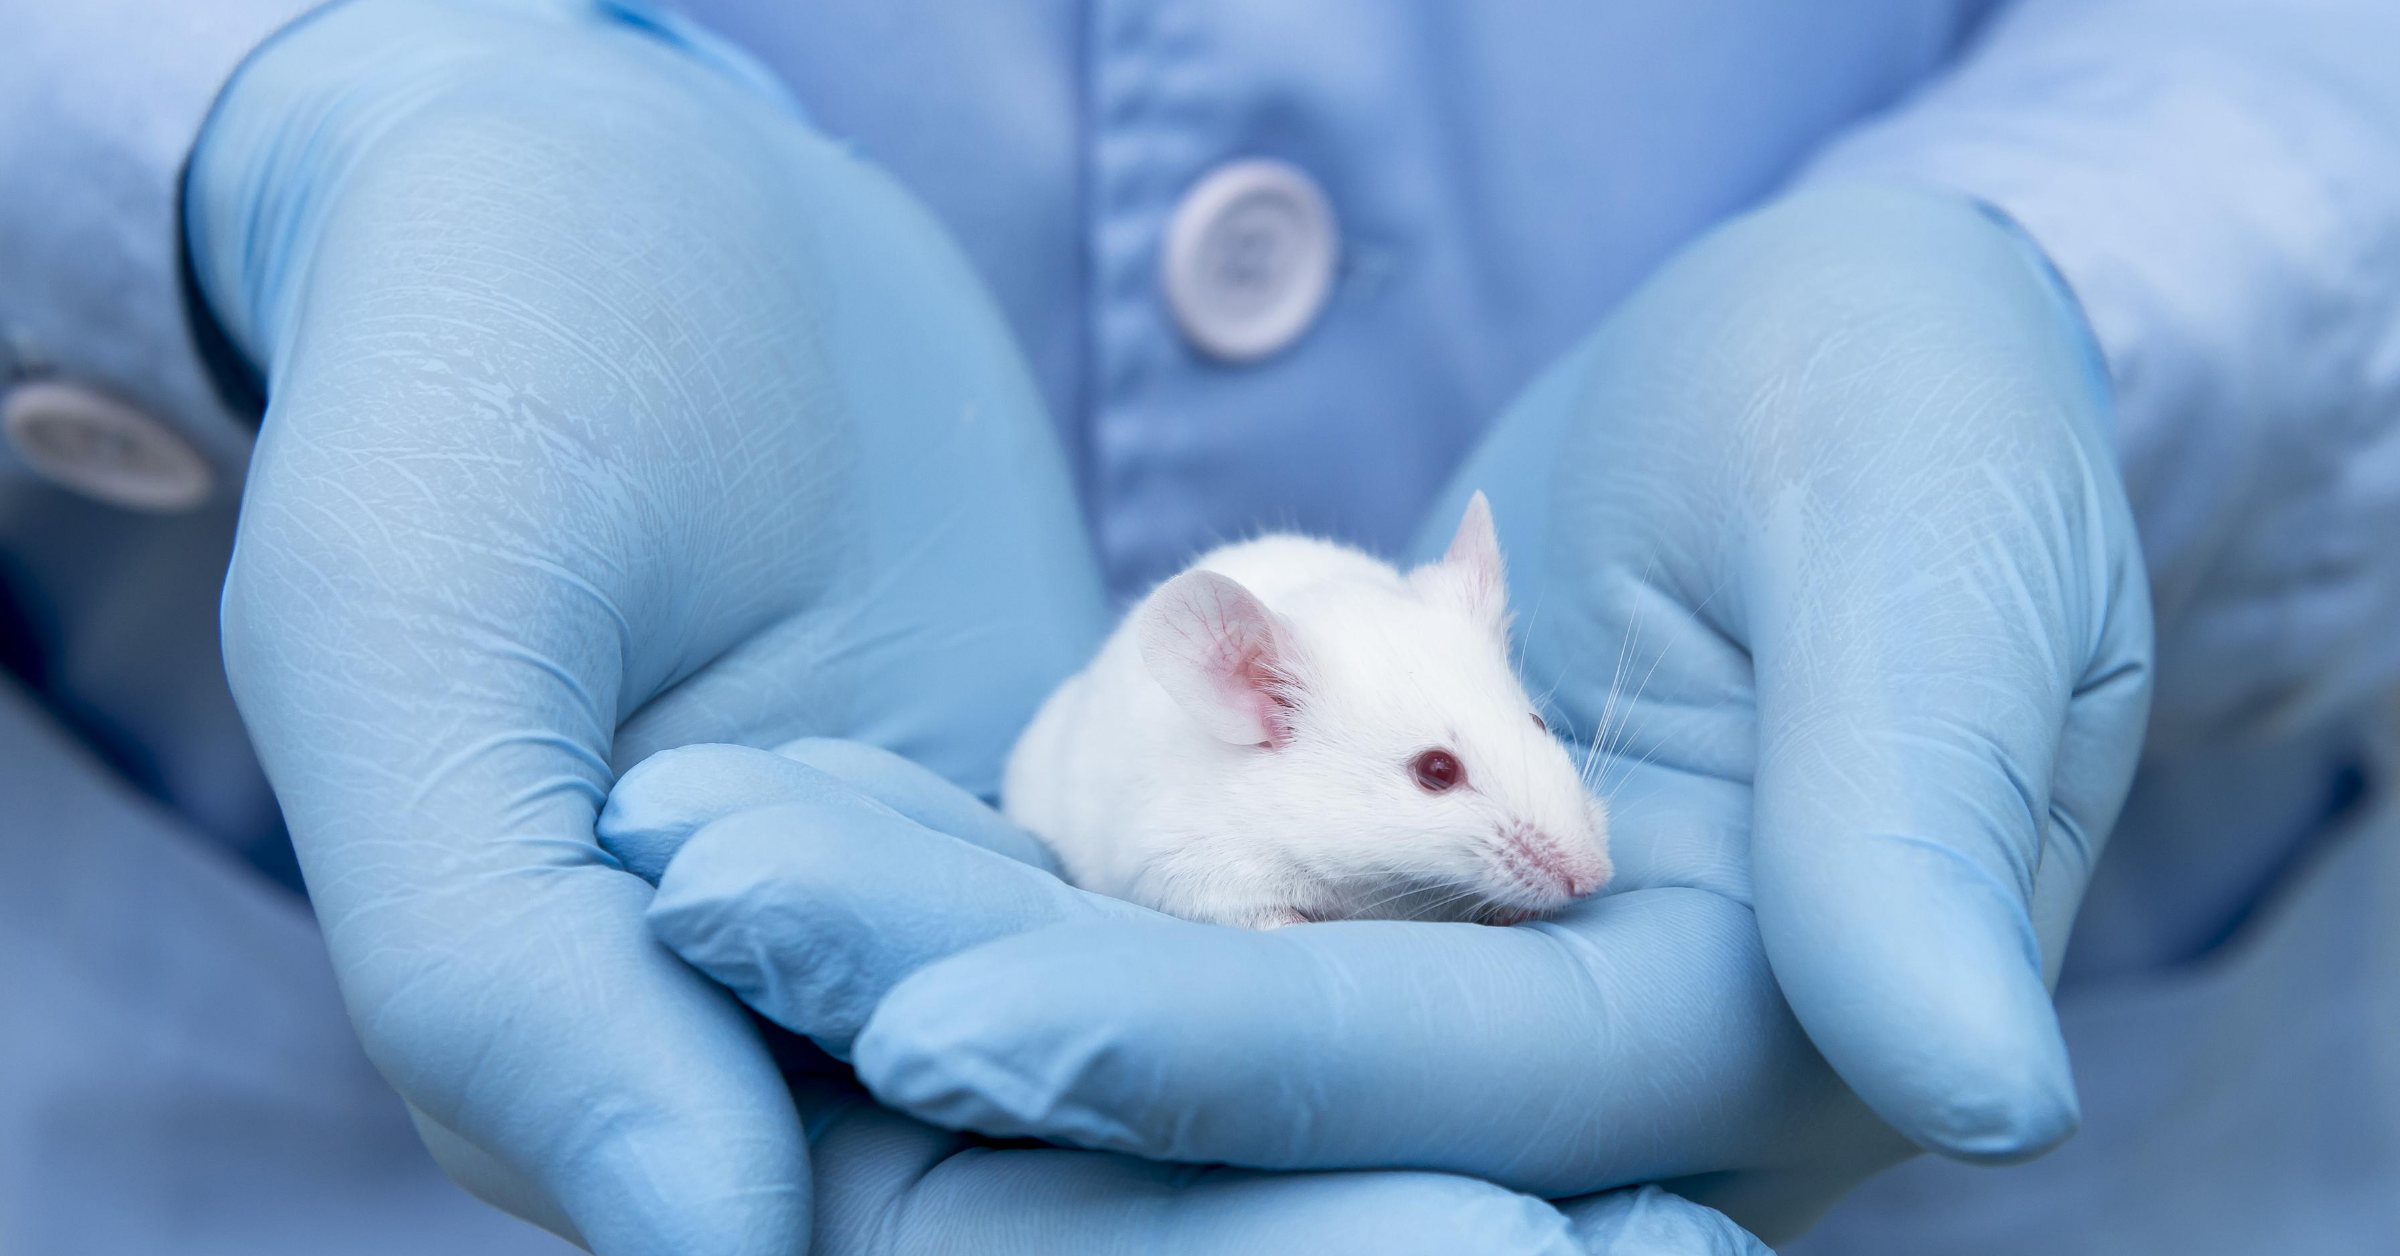 A small white mouse is cradled in human hands clad in sterile blue gloves